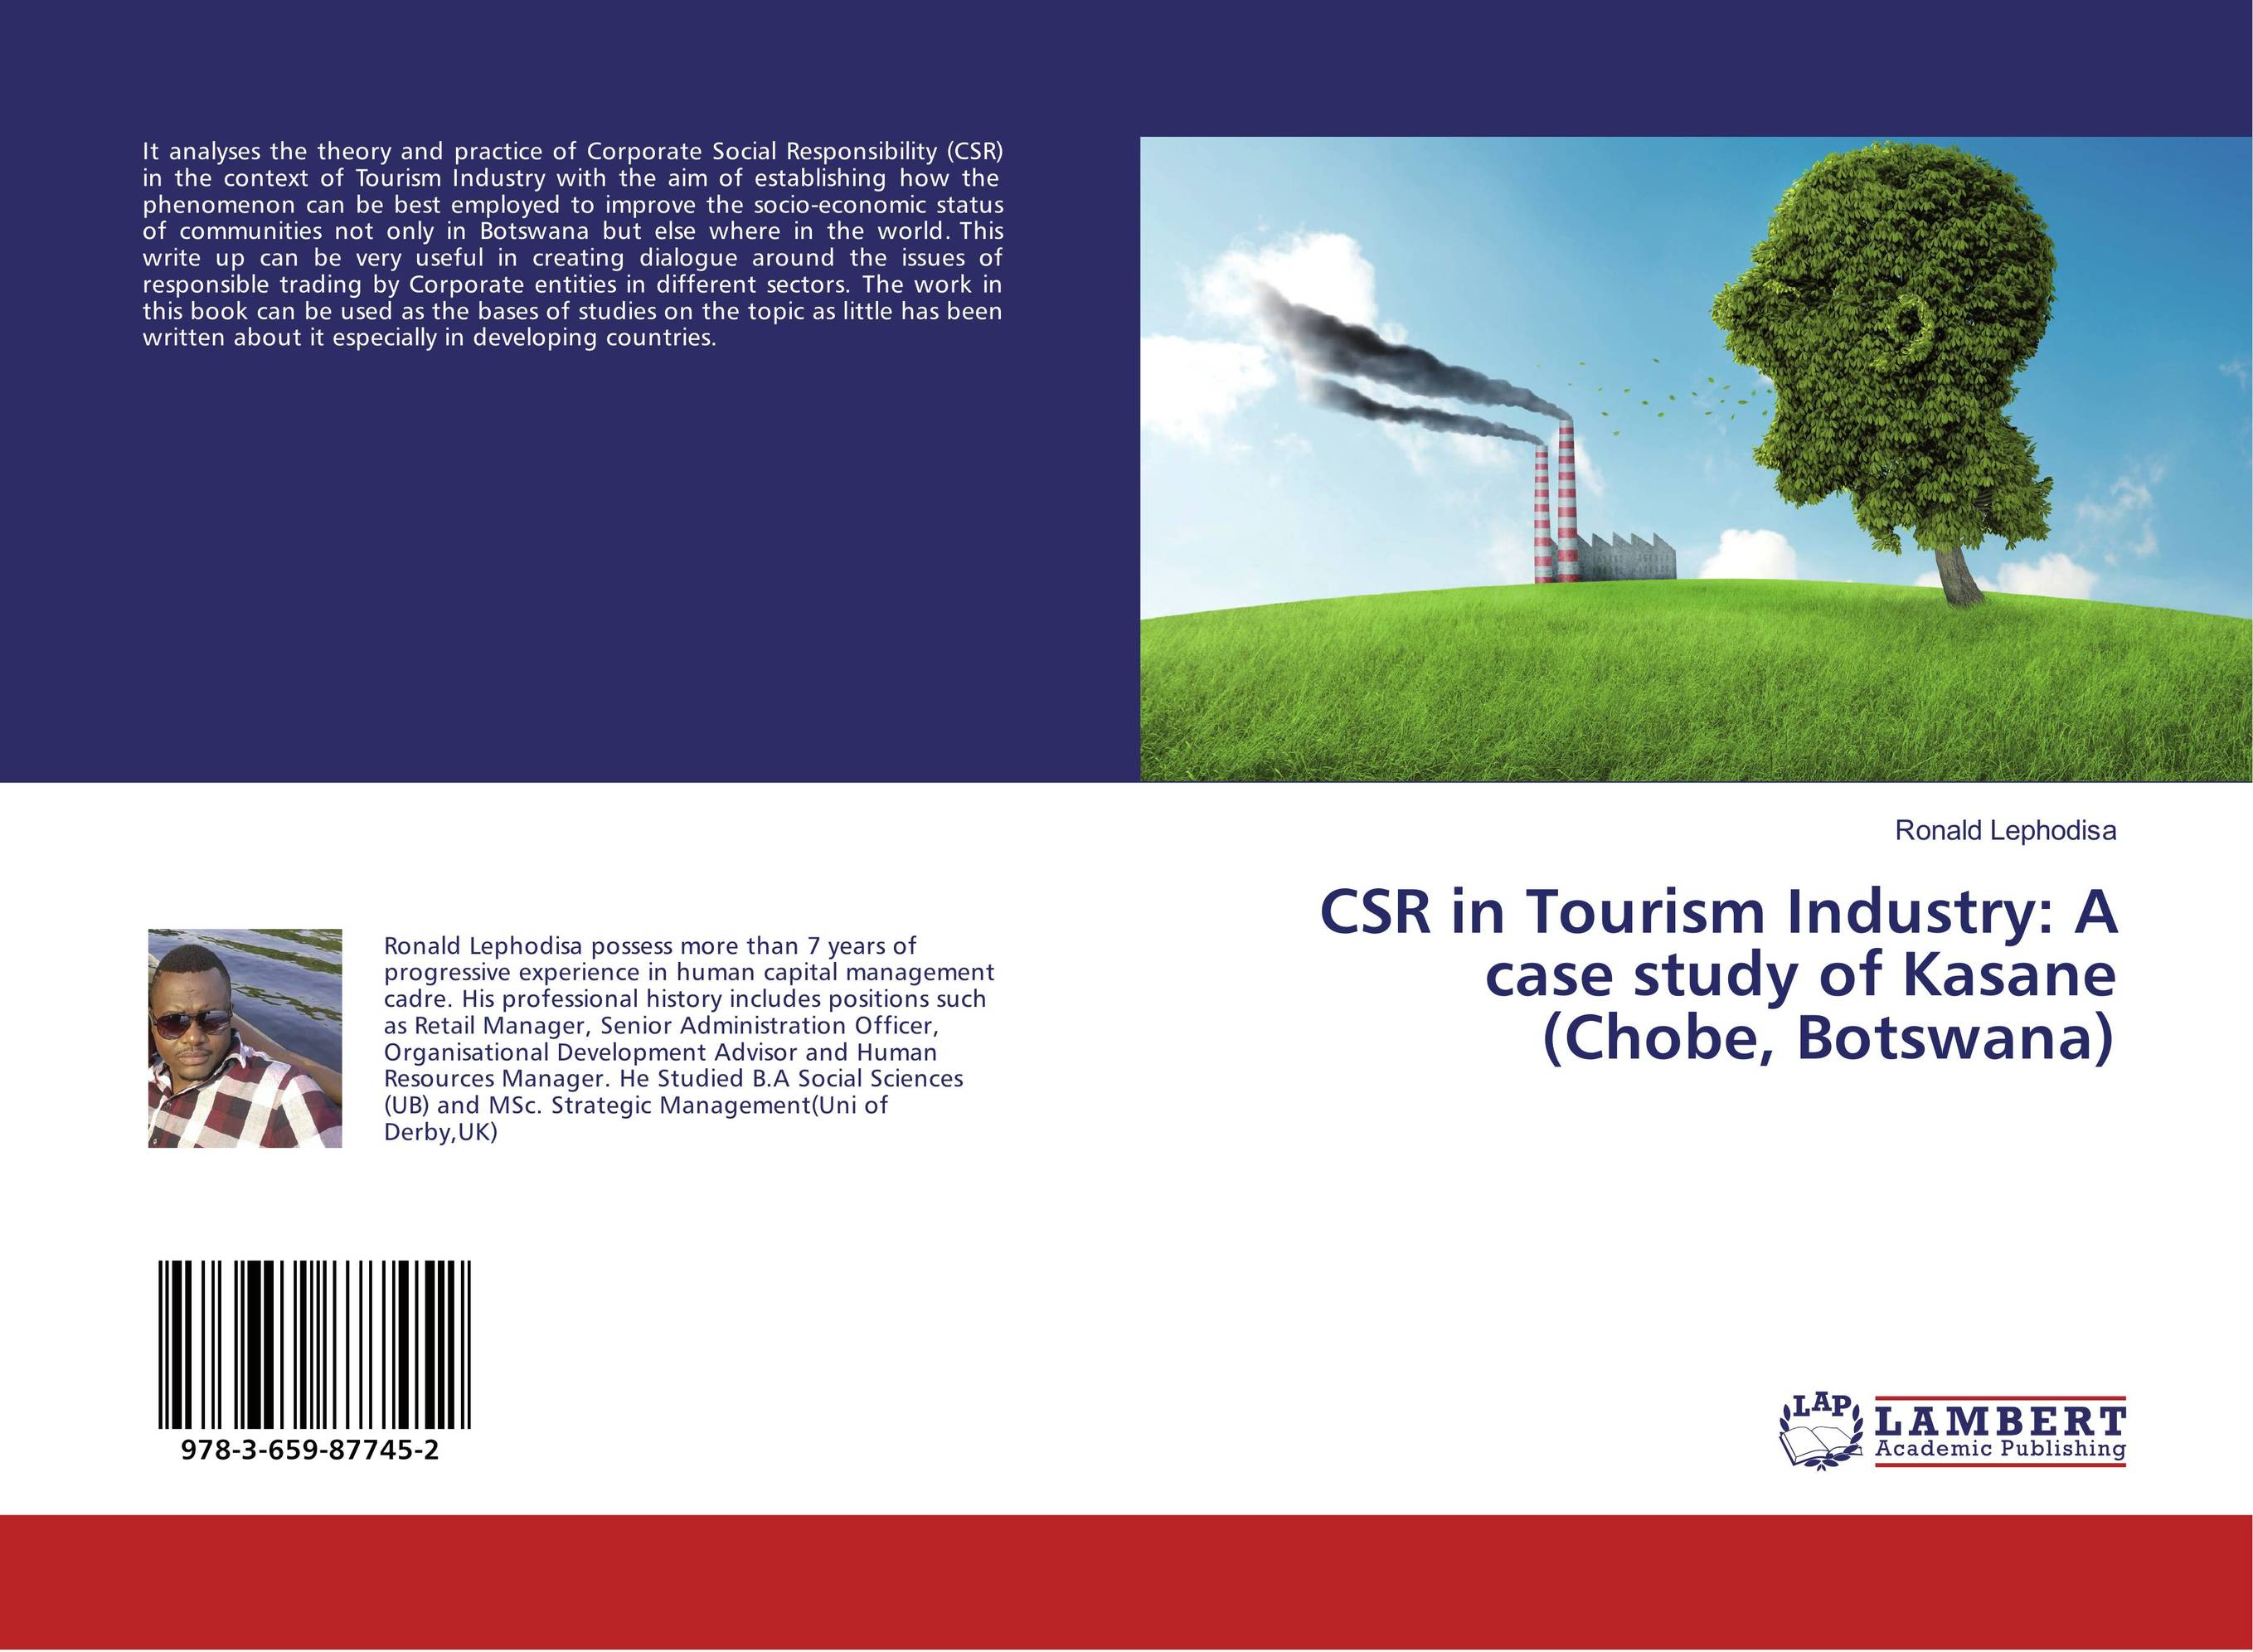 CSR in Tourism Industry: A case study of Kasane (Chobe, Botswana) corporate social responsibility csr in ethiopian floriculture industry